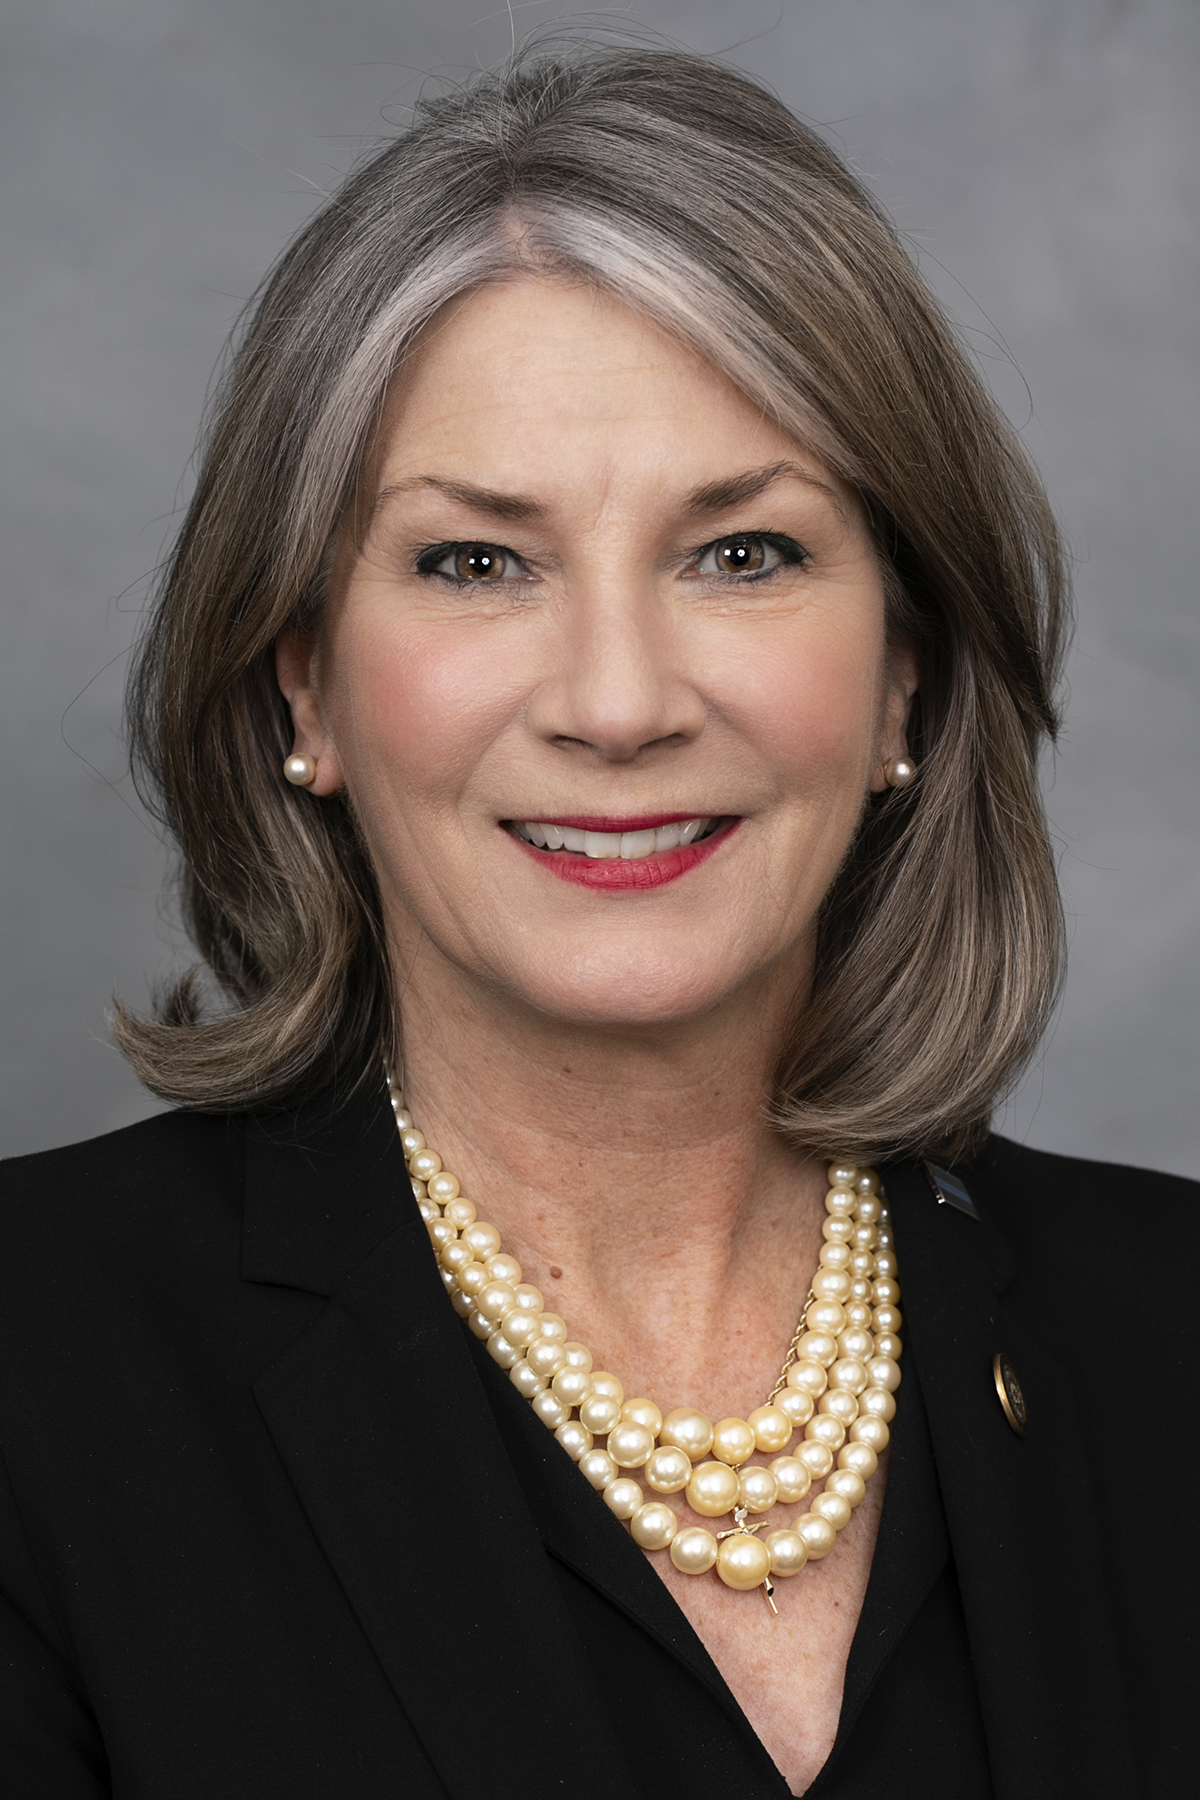 Senator Kathy Harrington - Biography - North Carolina